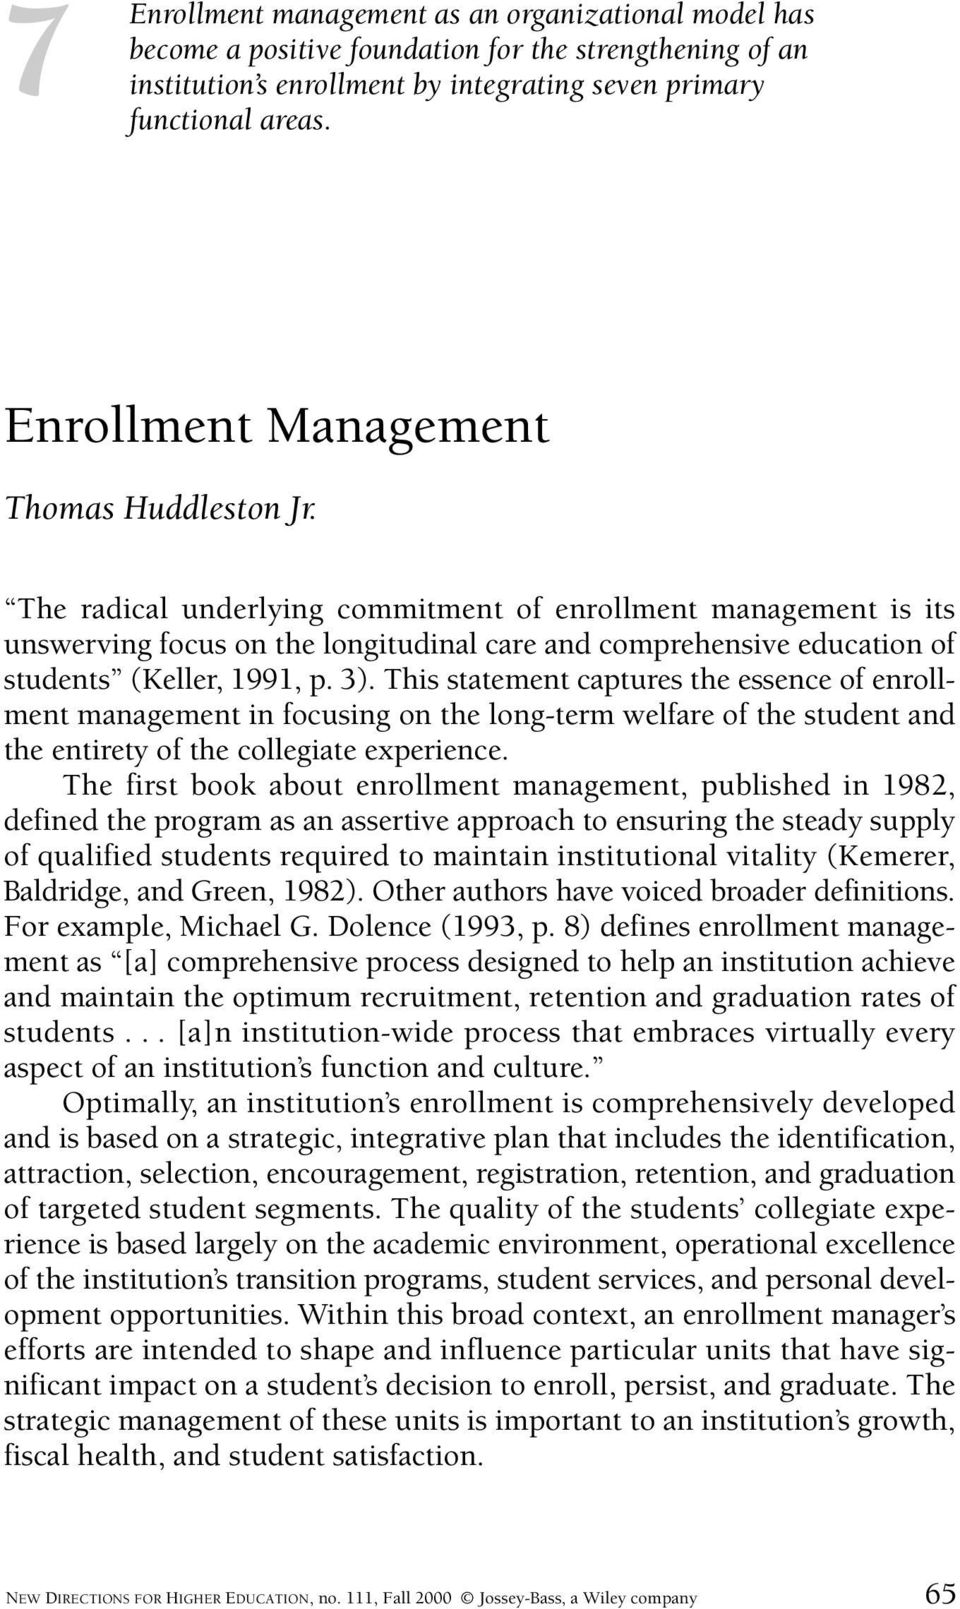 The radical underlying commitment of enrollment management is its unswerving focus on the longitudinal care and comprehensive education of students (Keller, 1991, p. 3).